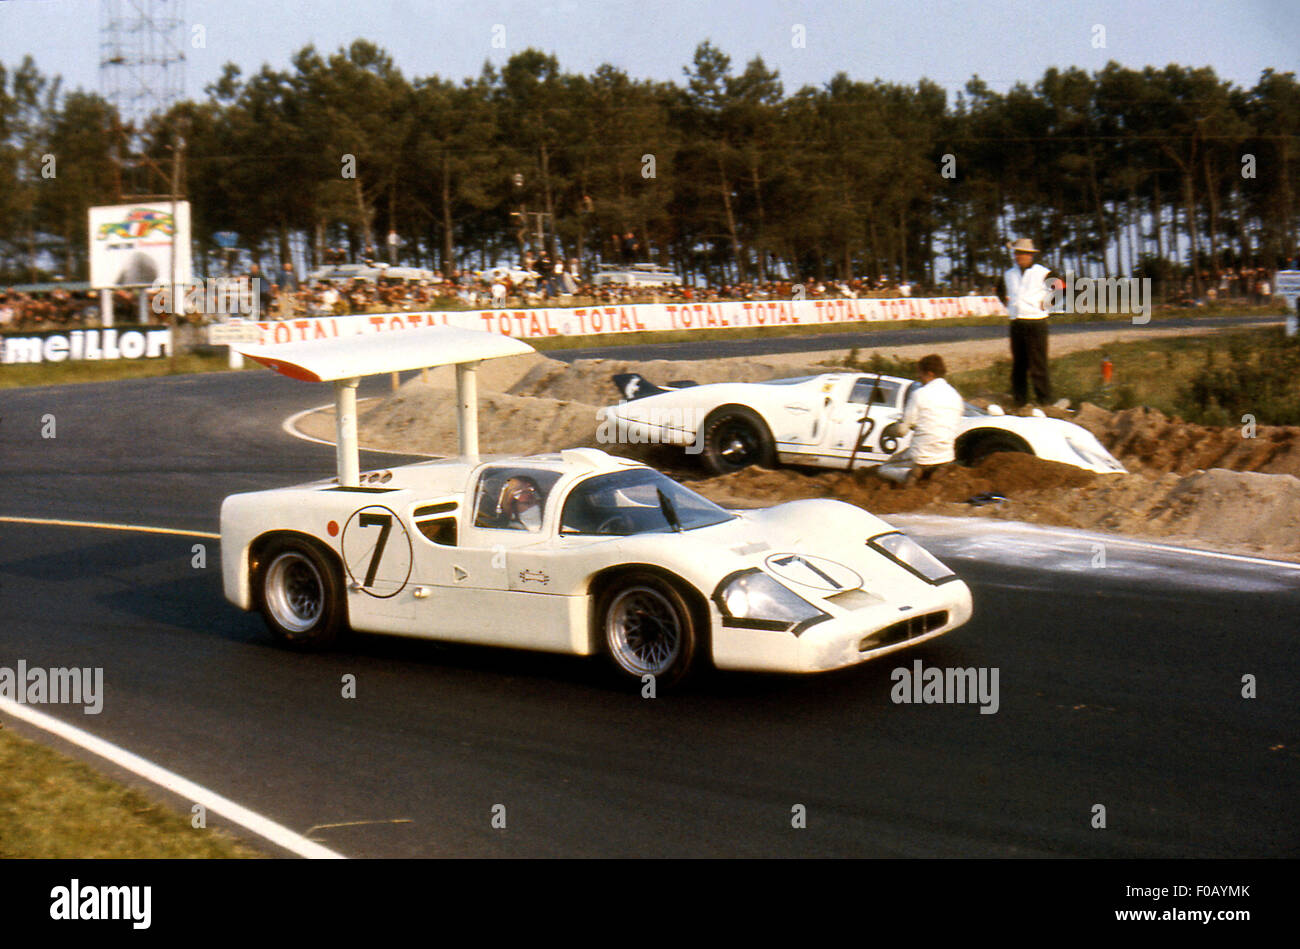 Le Mans 24 Hours Race 11th June 1967. Mike Spence,Phil Hill Chaparral 2F. - Stock Image